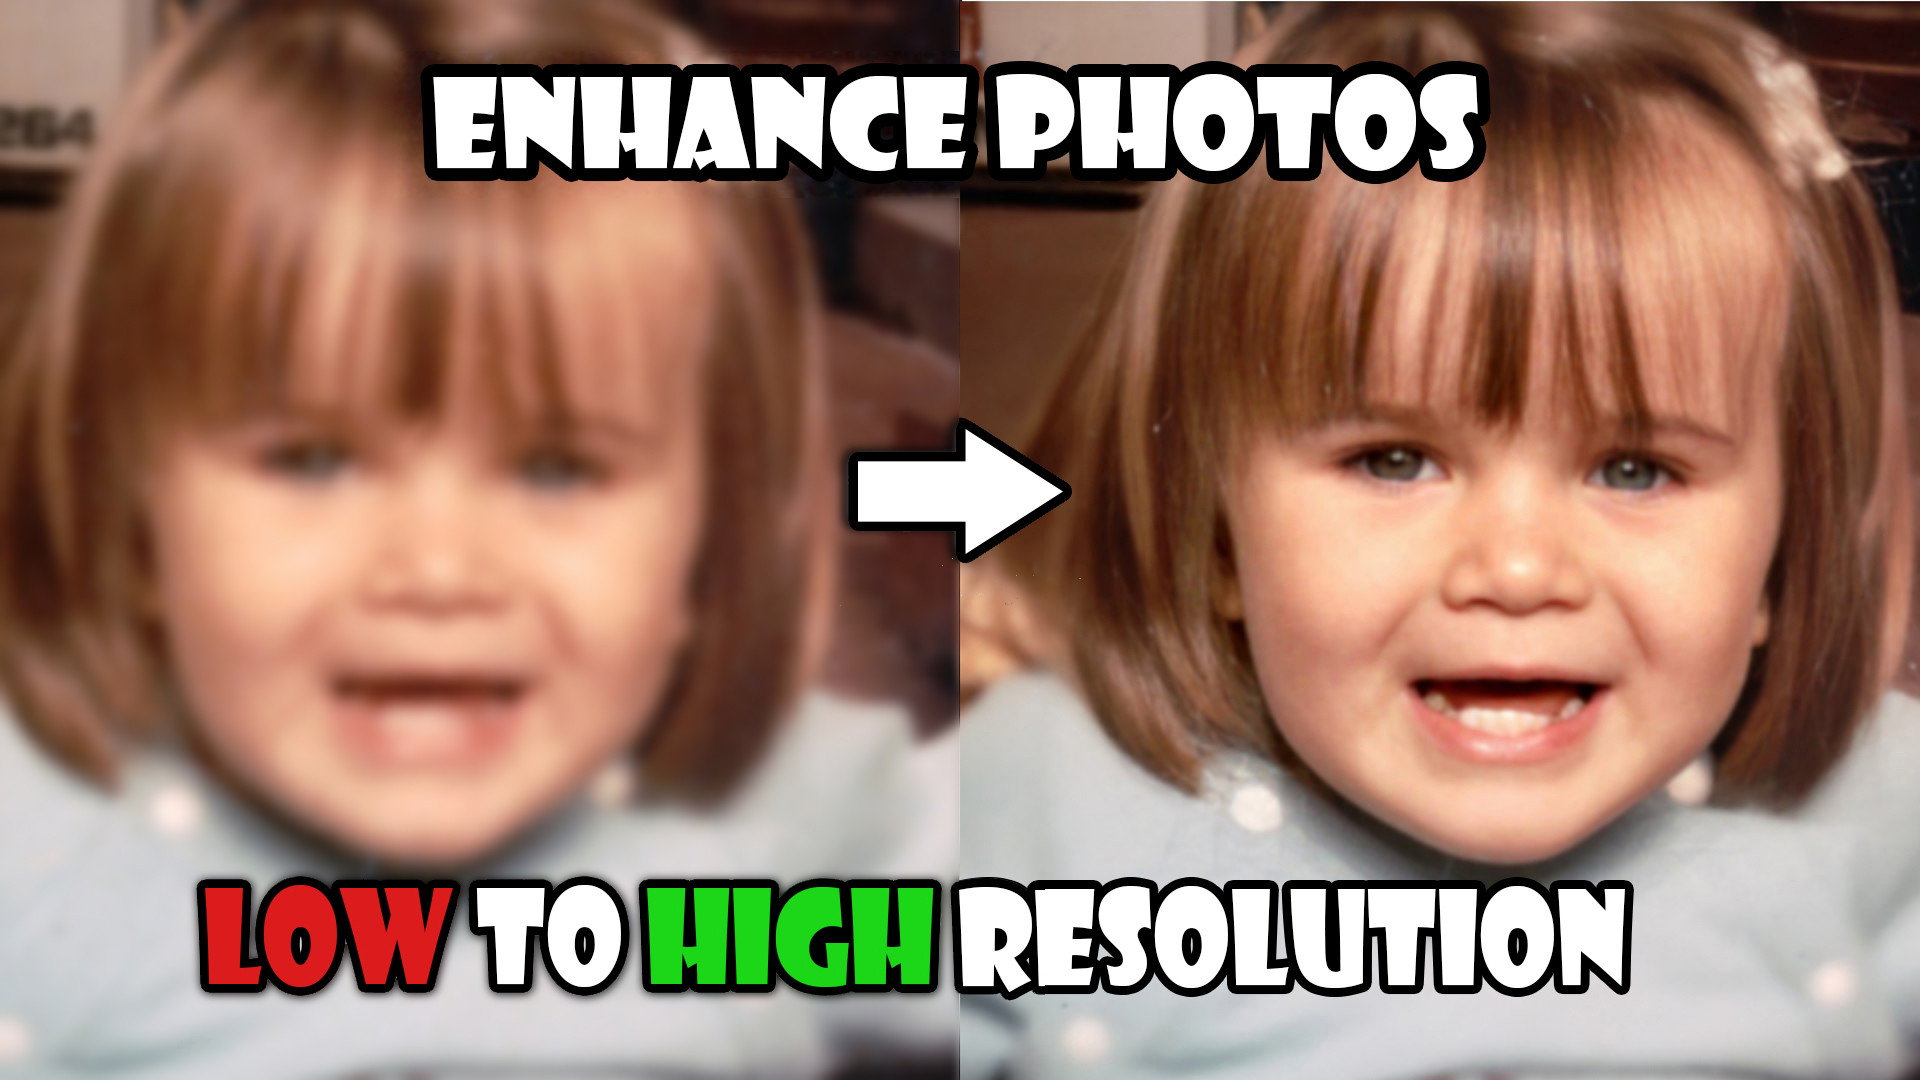 I will improve images quality,  restore,  enhance,  increase photos